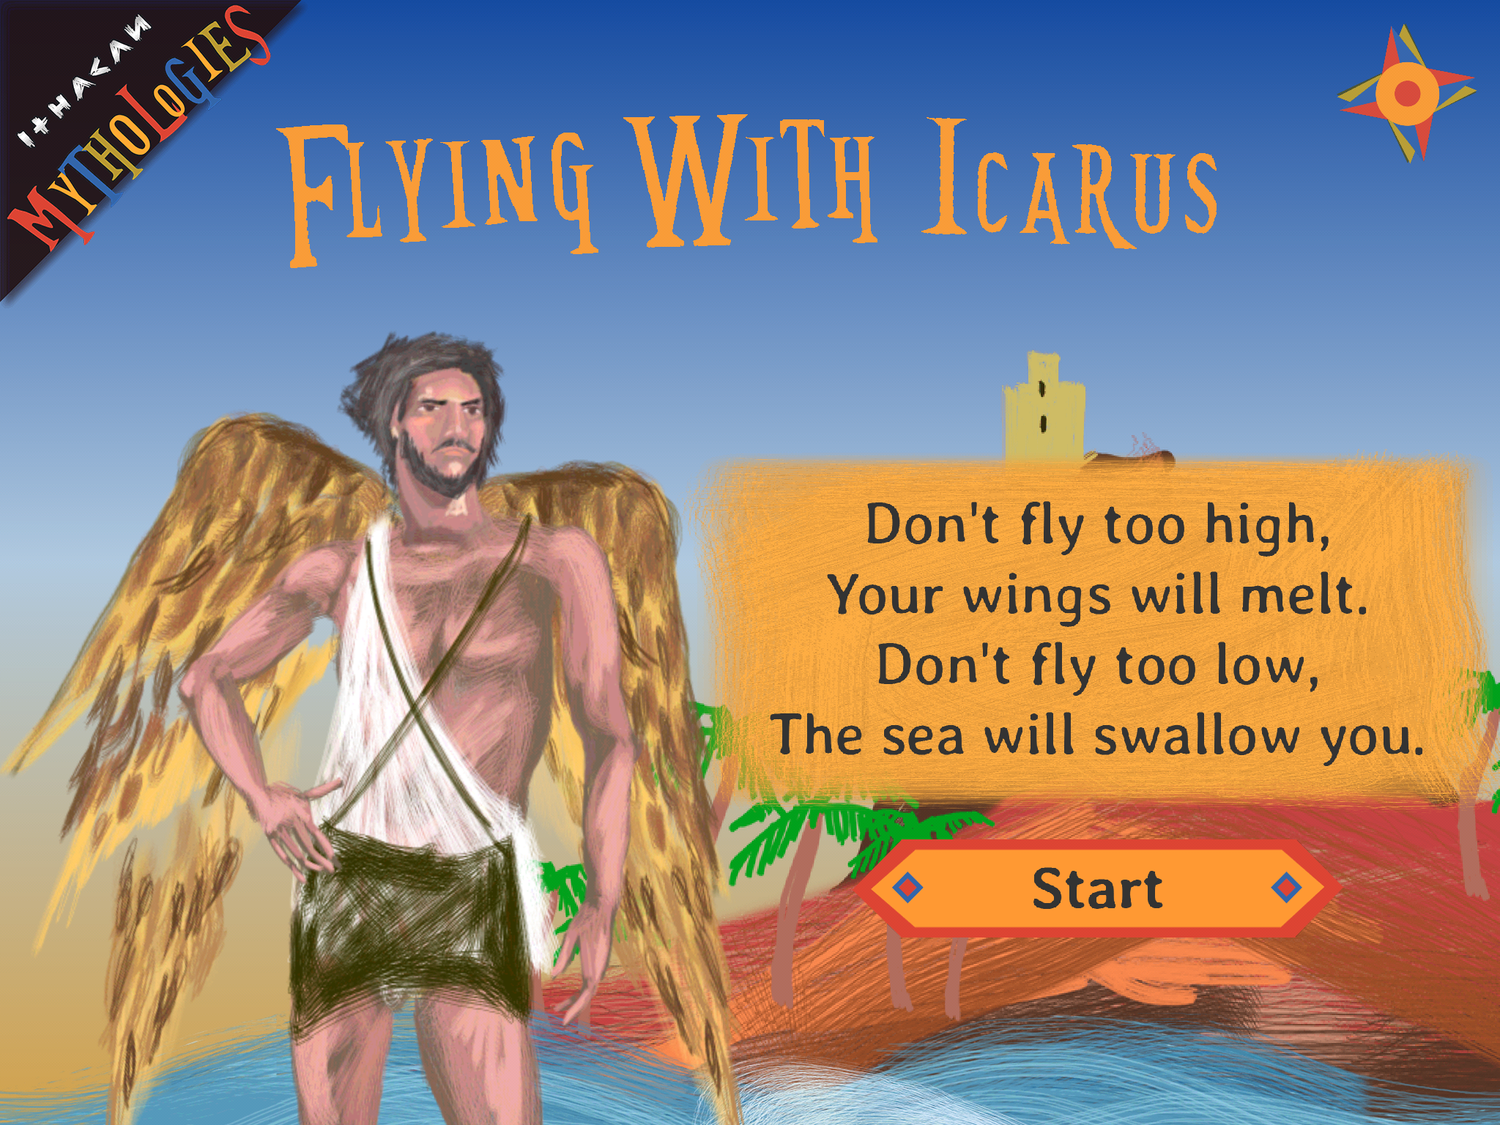 Flying with Icarus